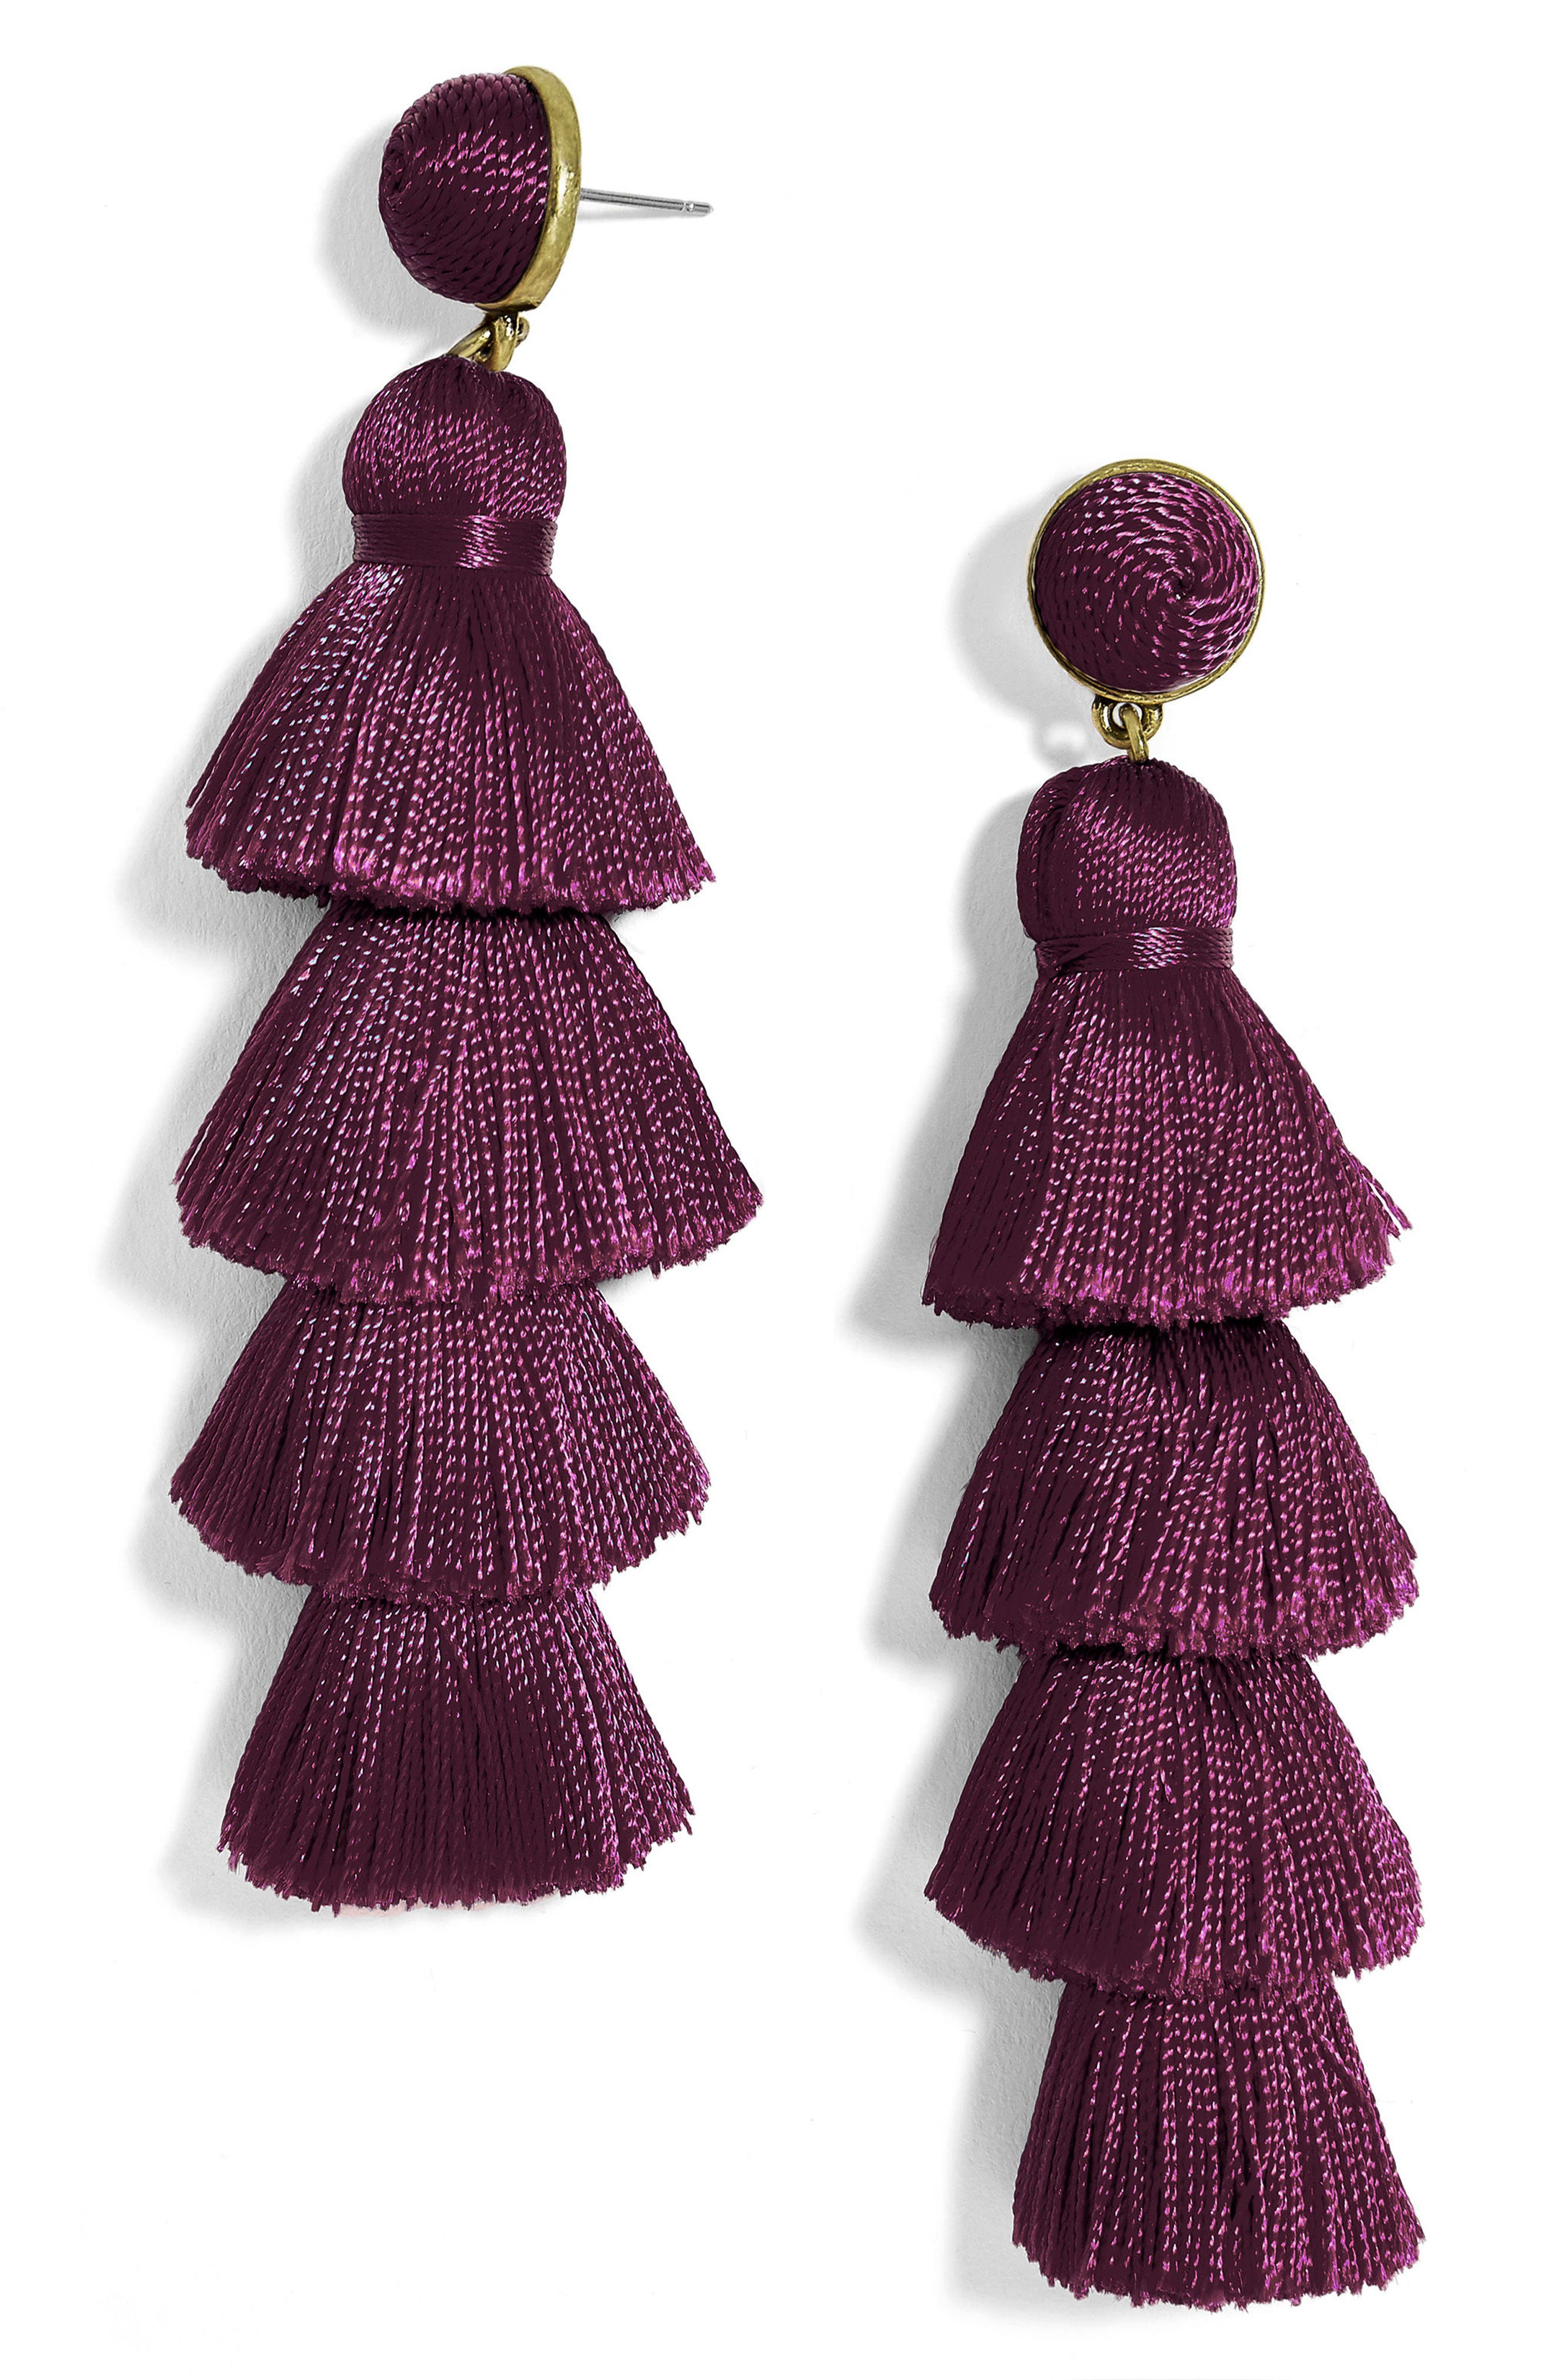 Gabriela Tassel Fringe Earrings,                         Main,                         color, Eggplant